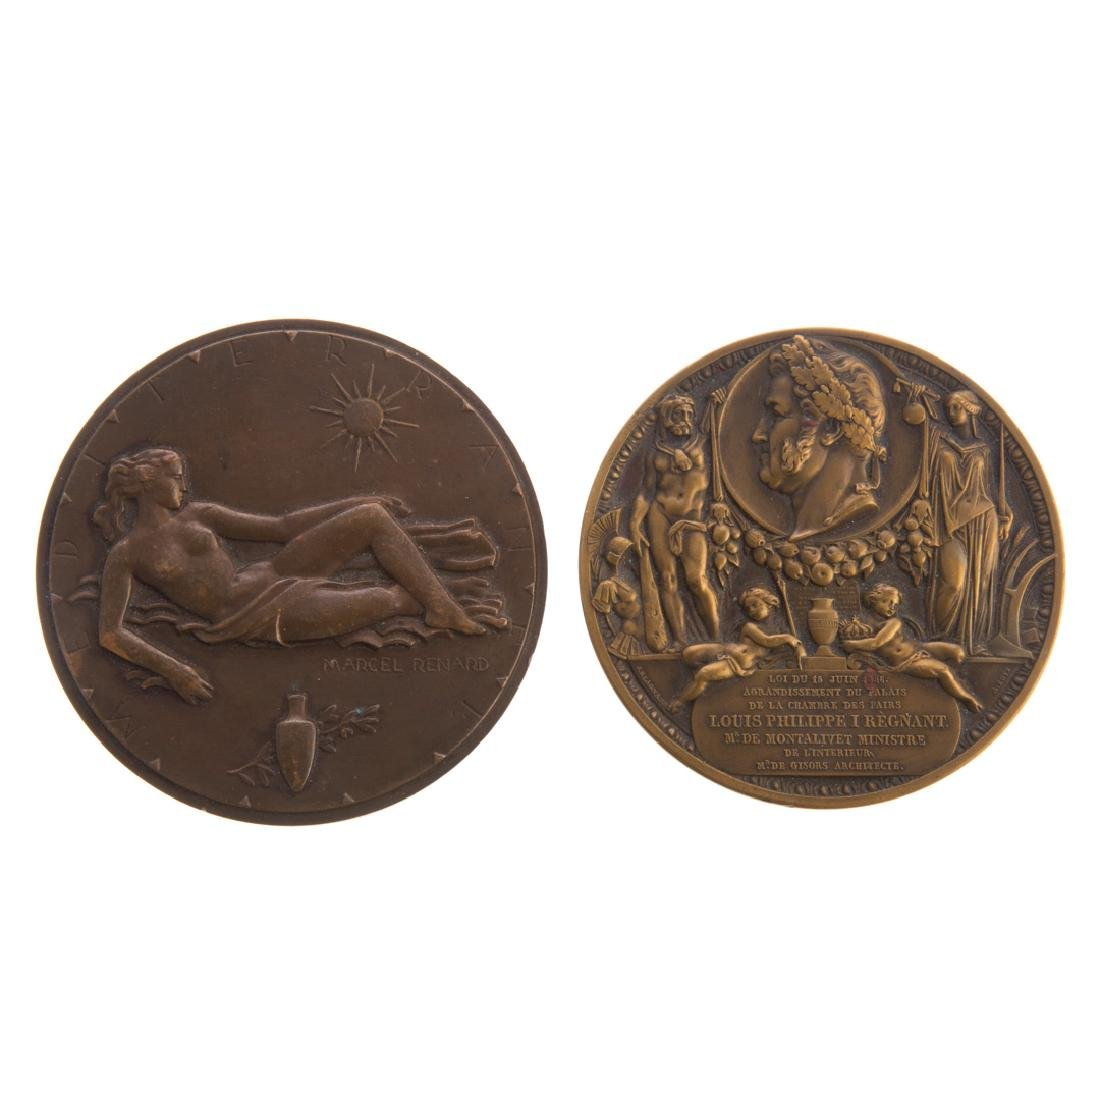 Medals, French, Louis Phillipe I Regant